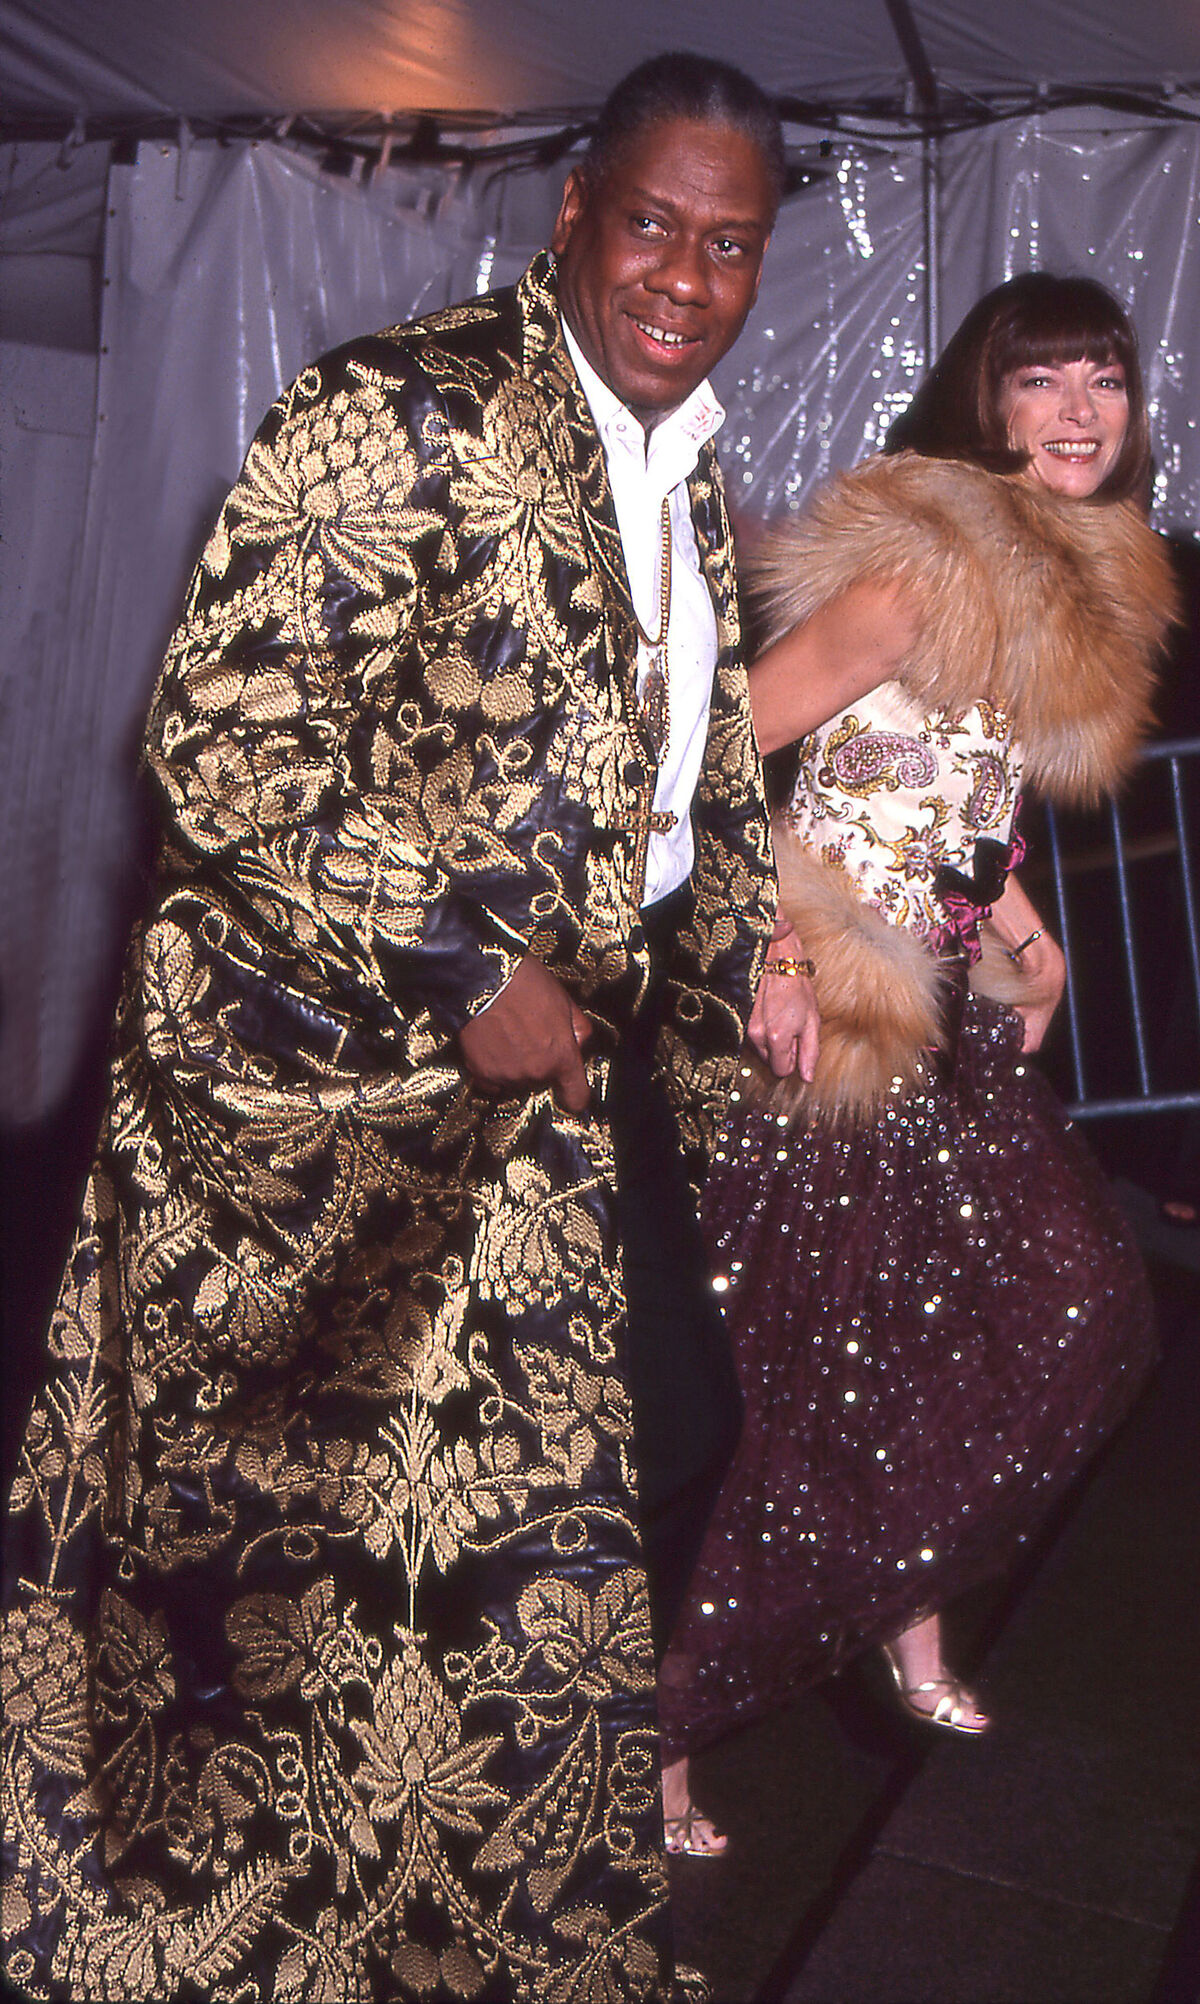 Editor-at-large Andre Leon Talley and Editor-in-chief Anna Wintour at the Costume Institute Gala at the Metropolitan Museum of Art, New York, 1999. Photo by Rose Hartman/Getty Images.